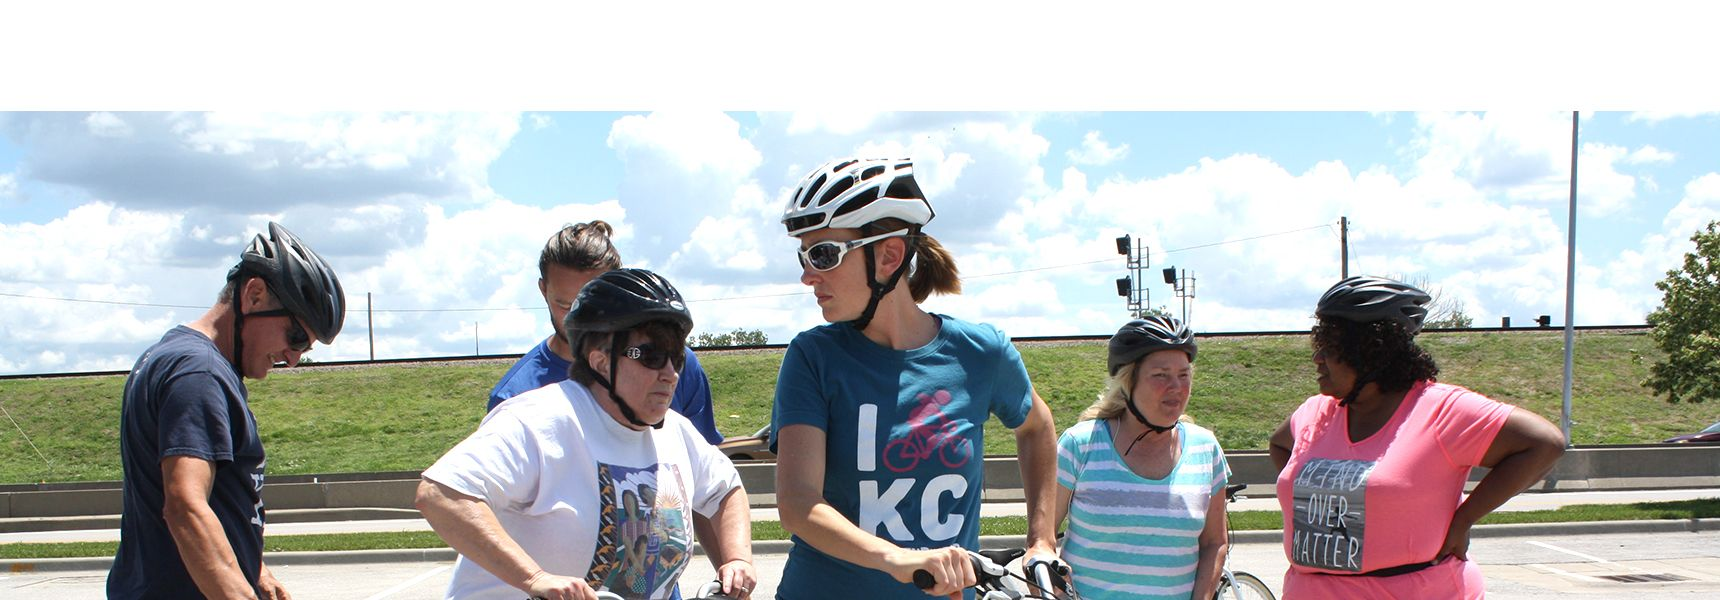 BLVE members getting ready to ride tandem bicycles